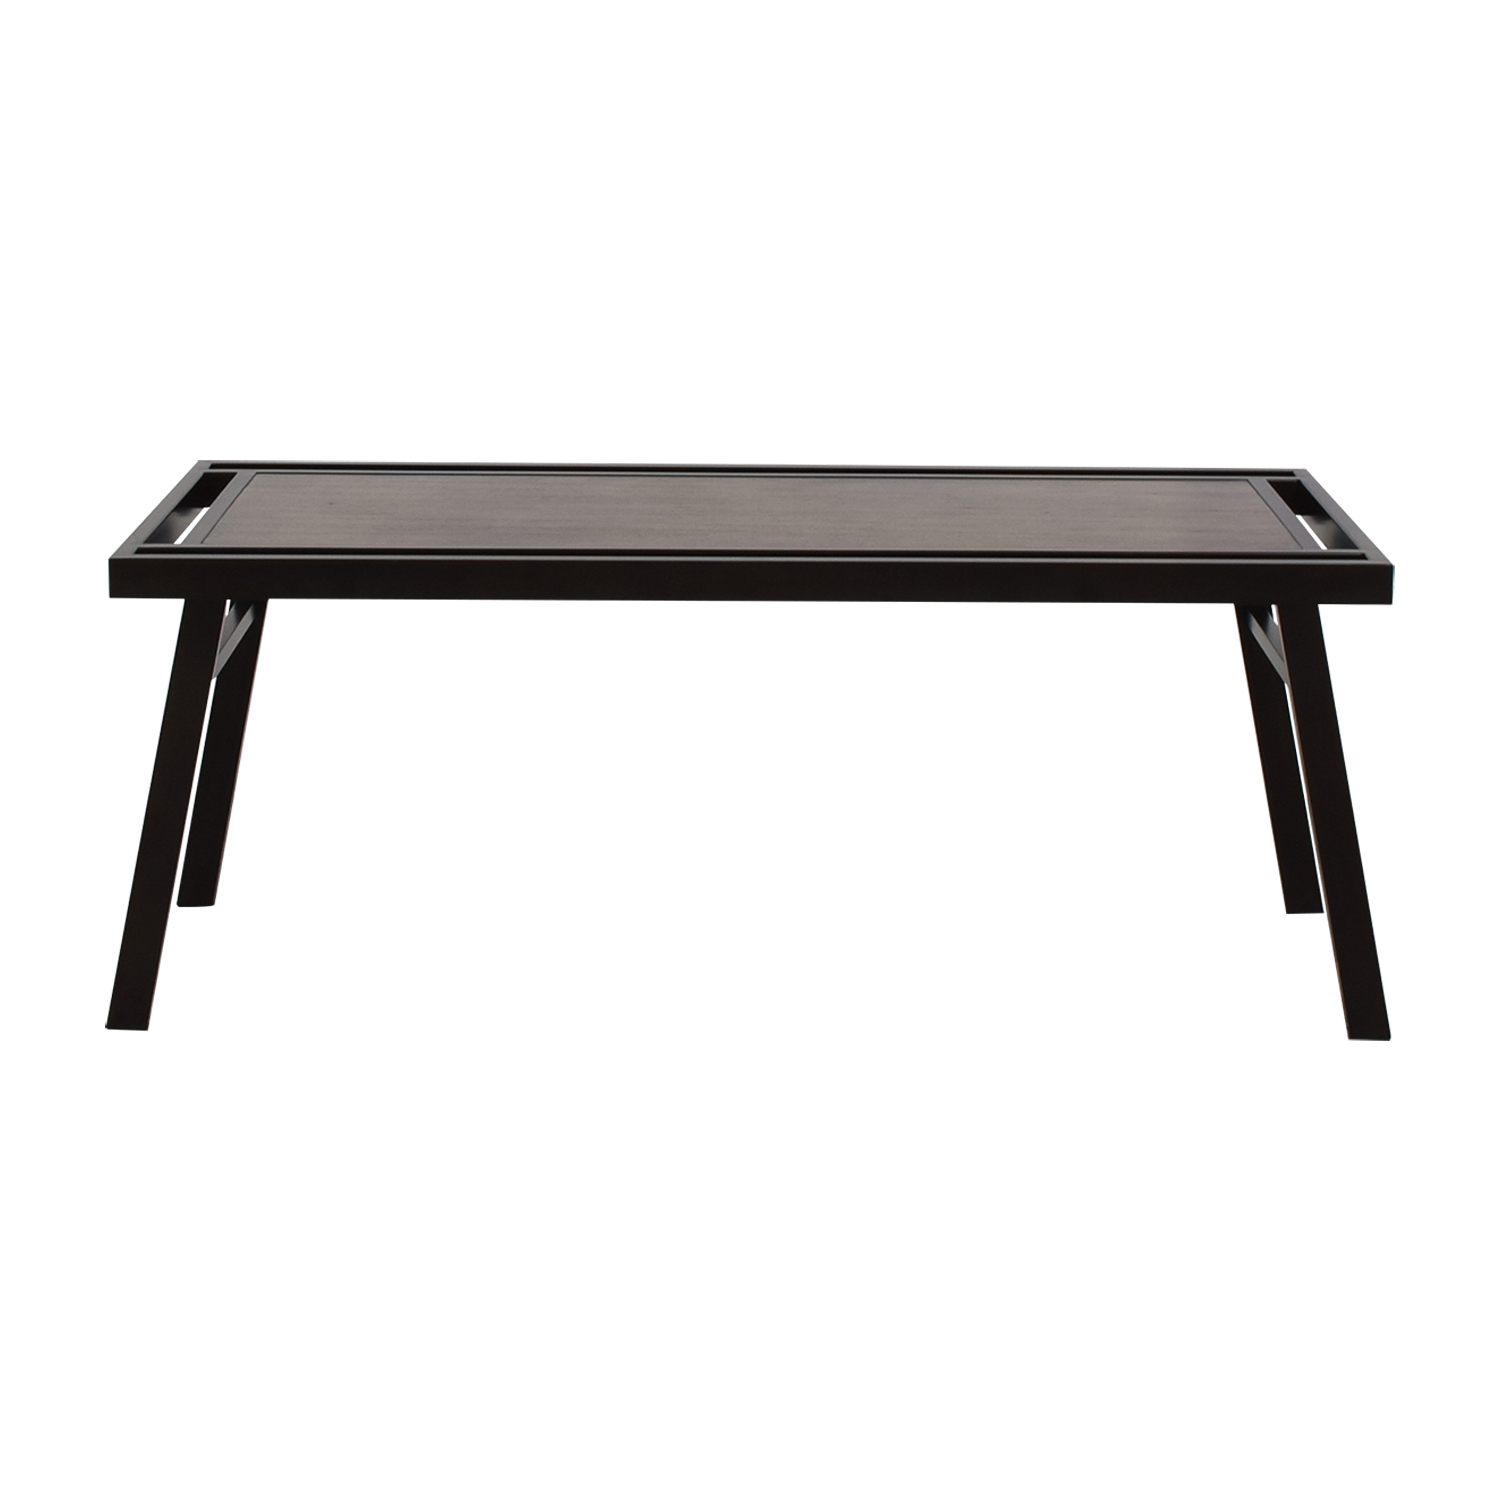 Ashley Furniture Ashley Furniture Mid-Century Coffee Table on sale